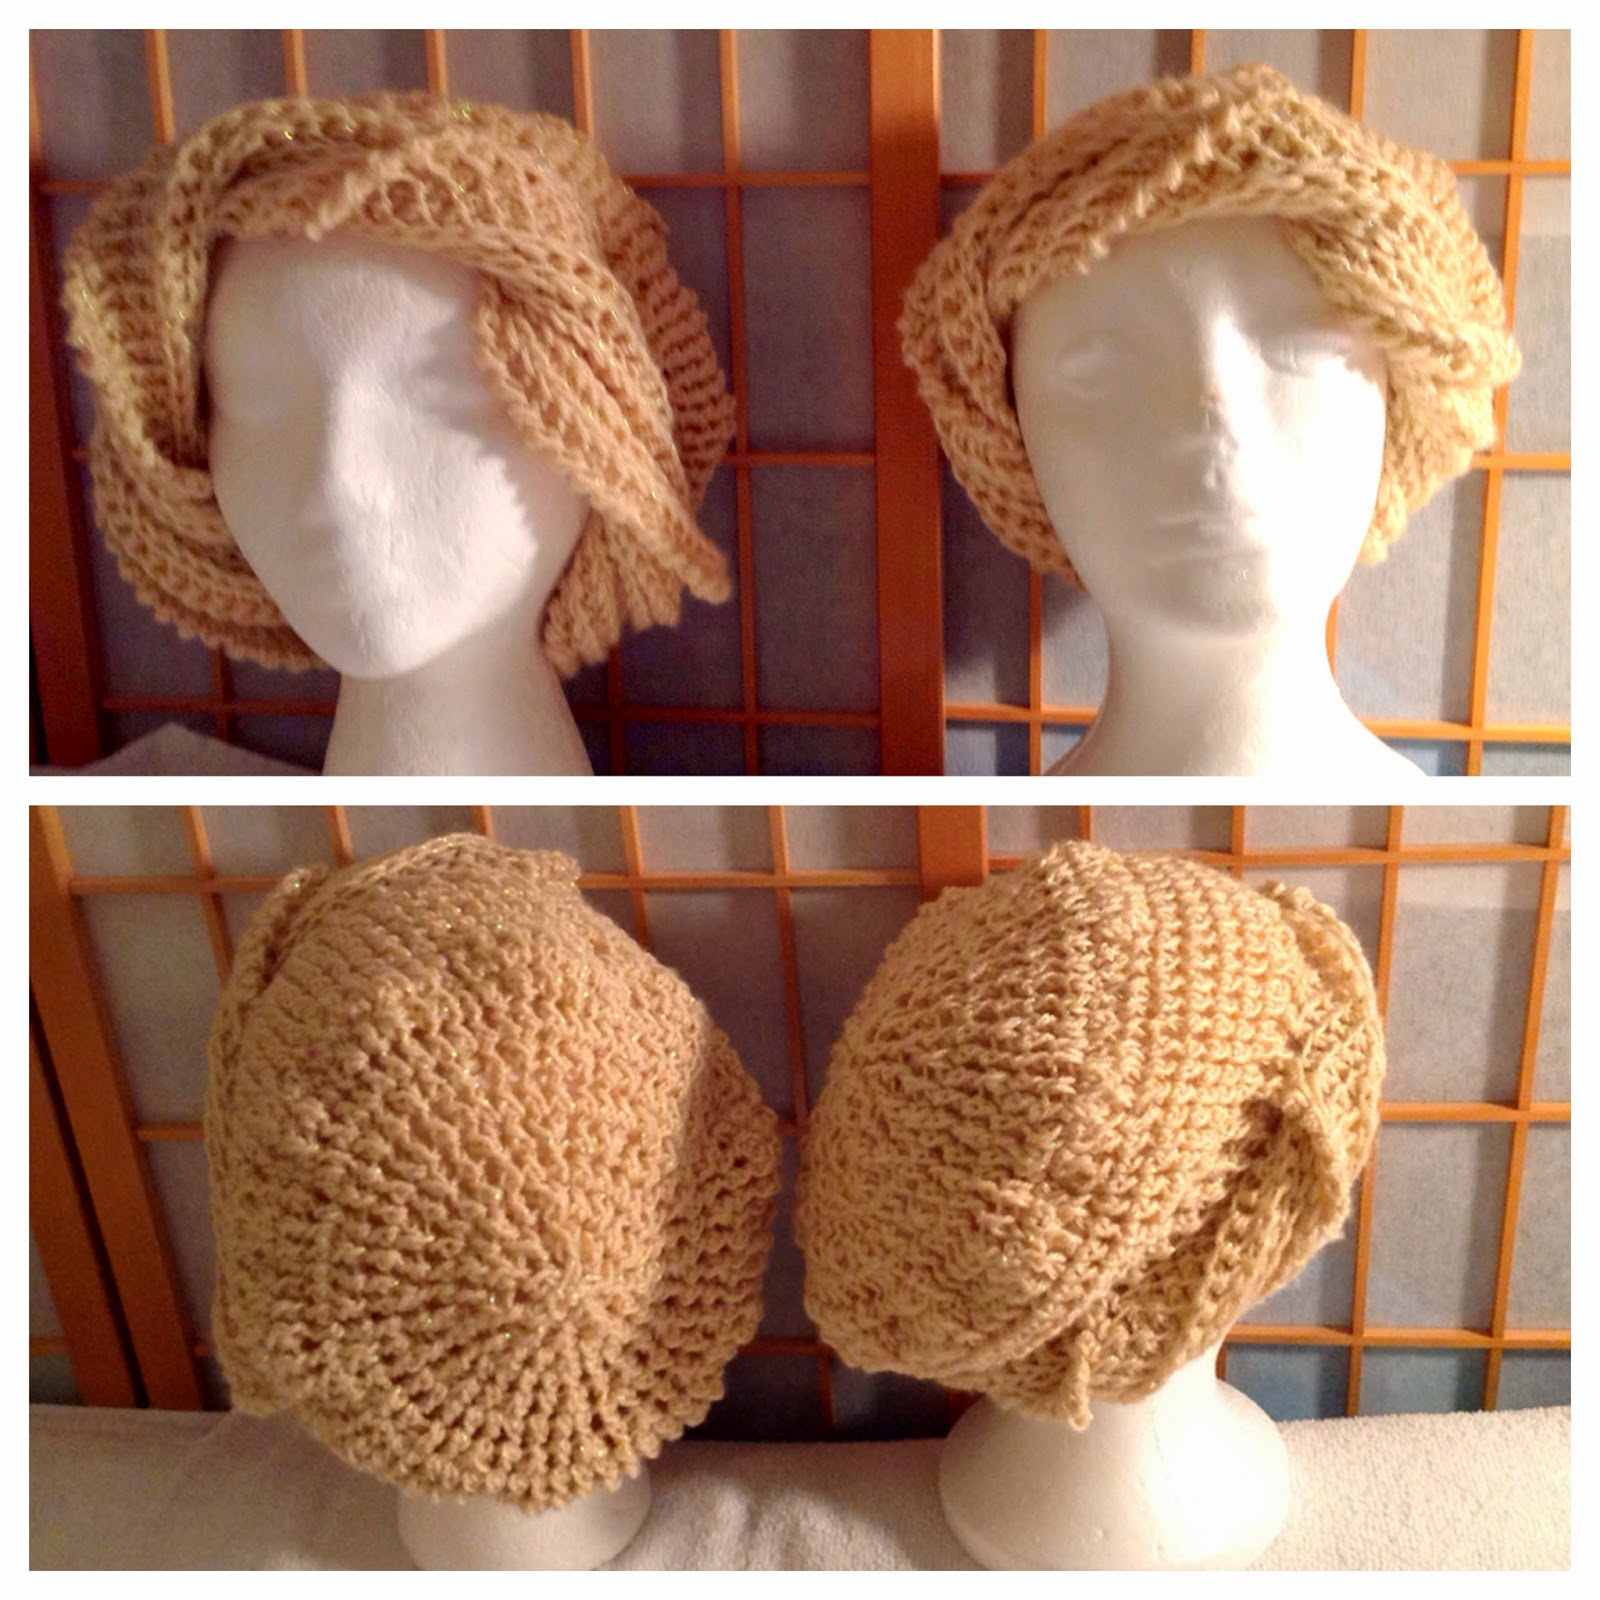 The CAROLYN Crochet Beanie Hat (left) The SAMANTHA Turban Hat (right)